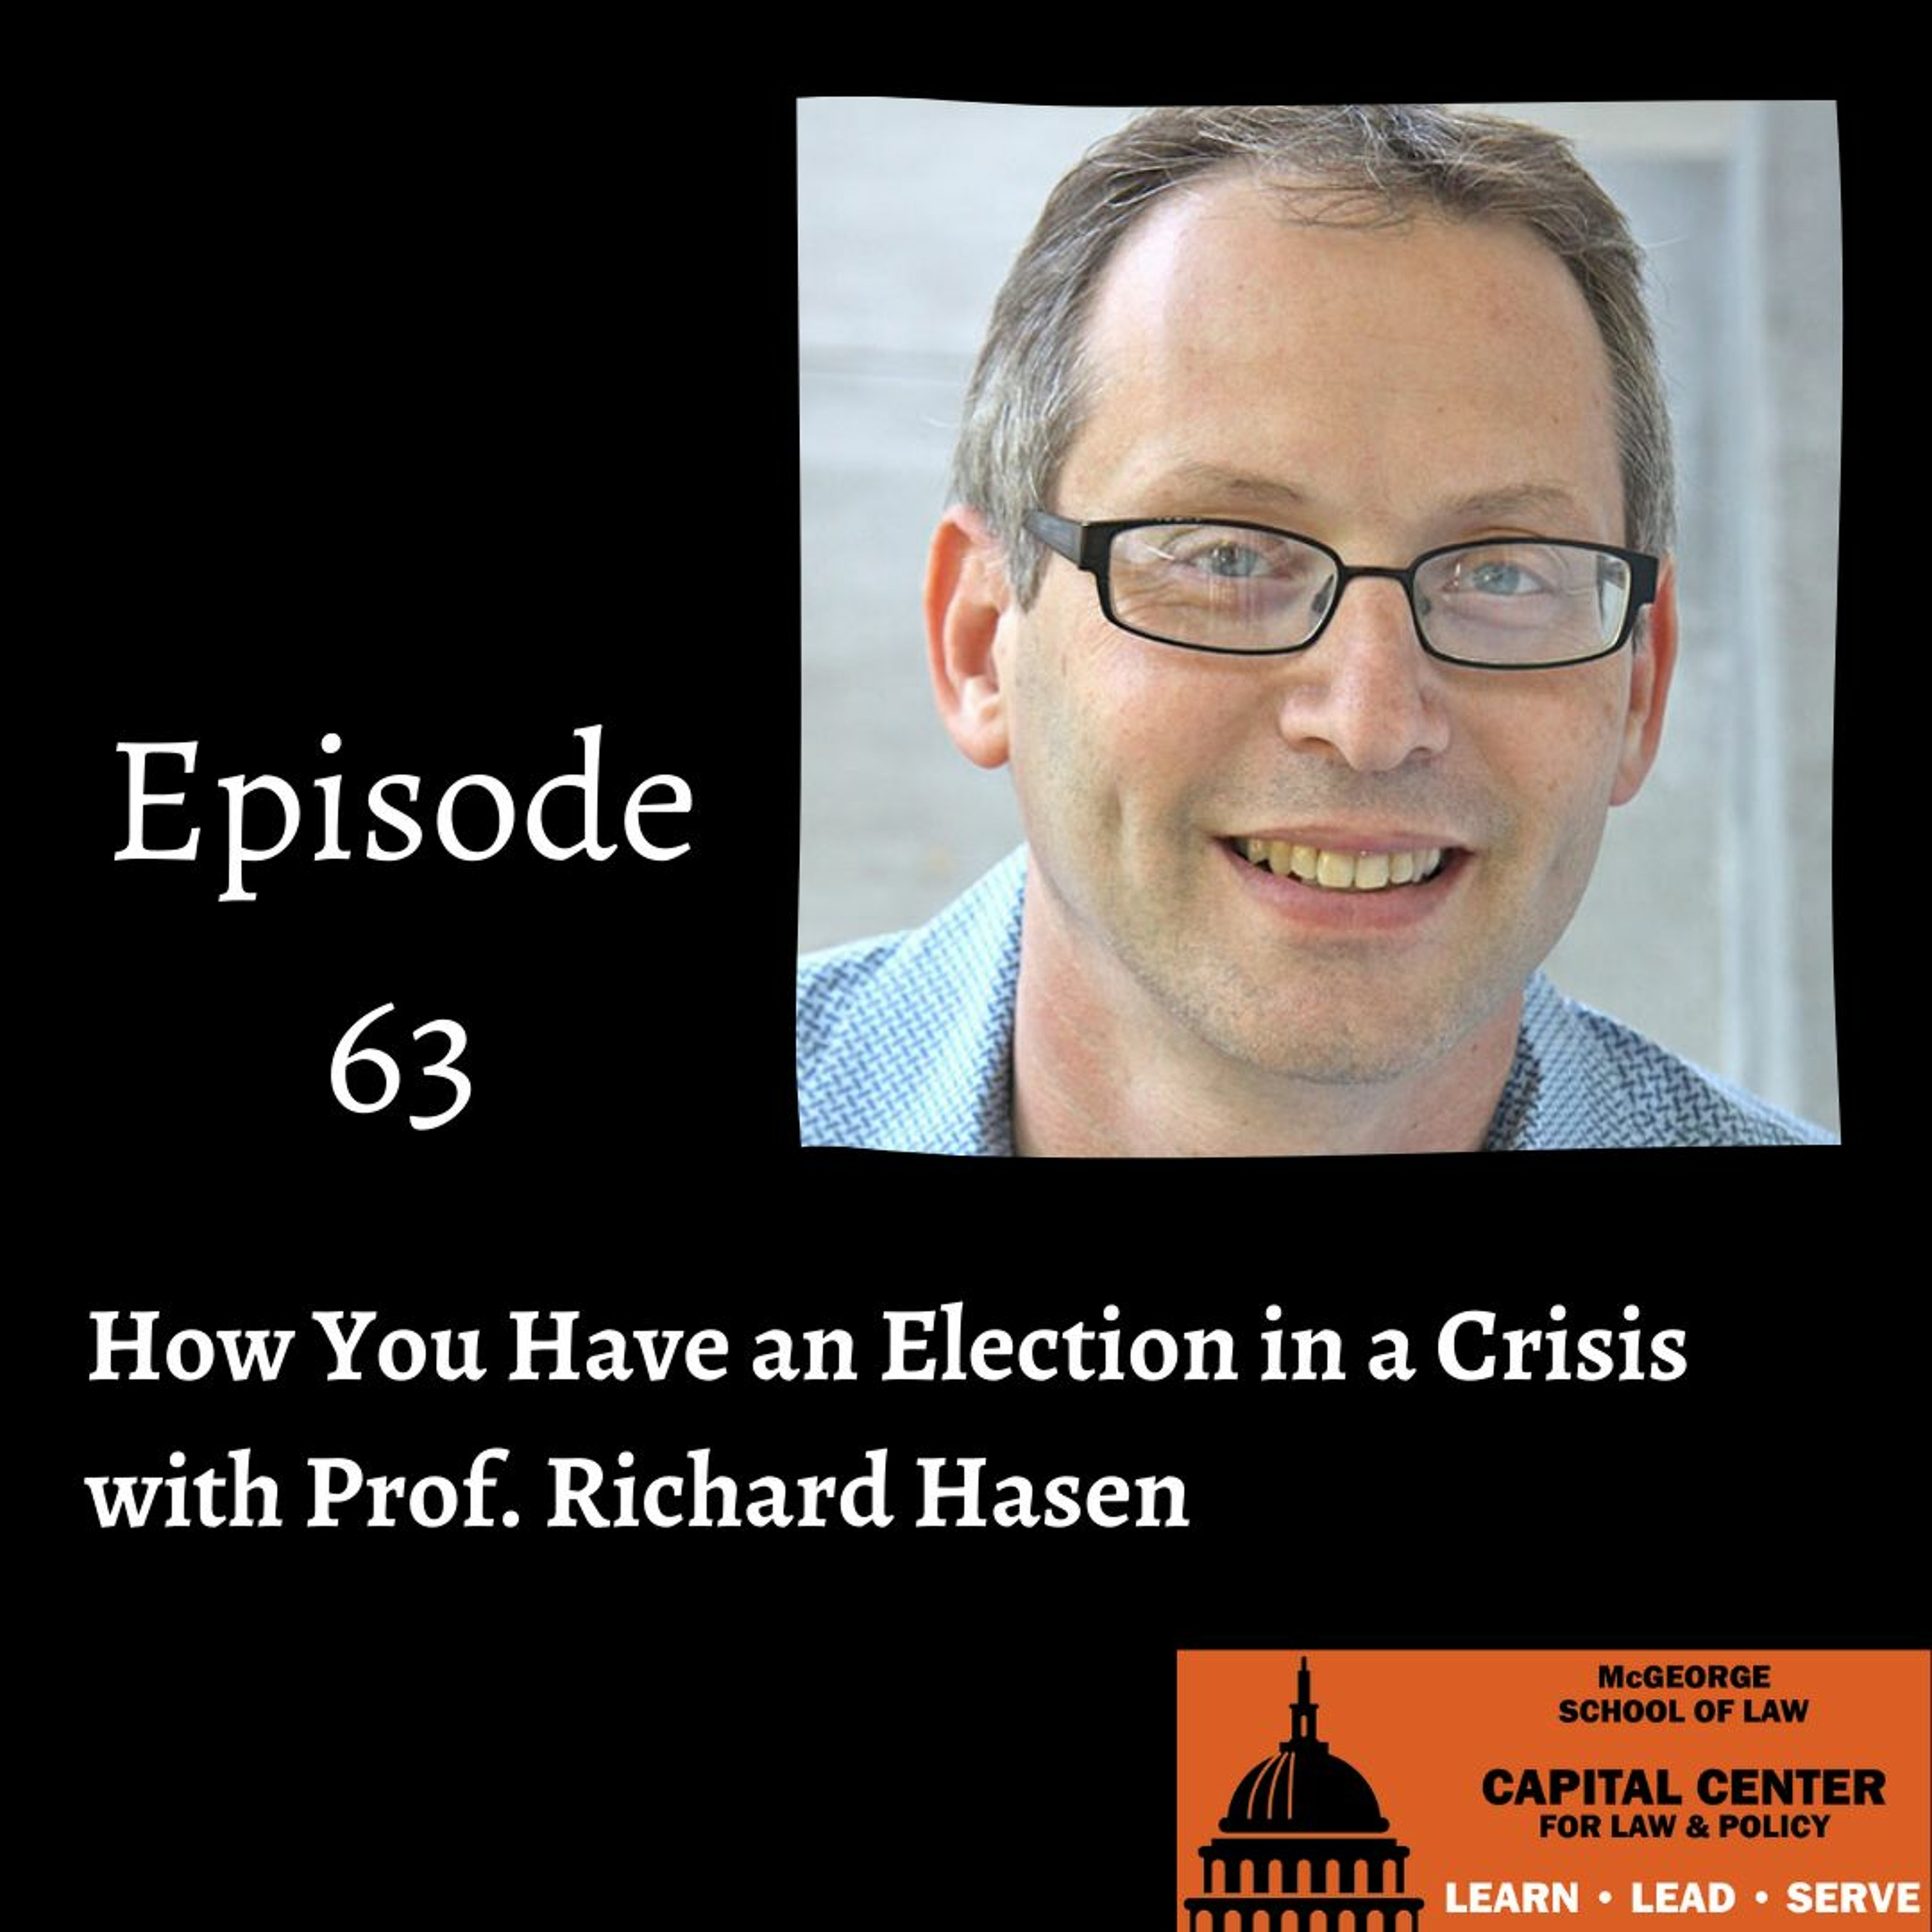 Episode 63: How You Have an Election in a Crisis w Prof. Richard Hasen